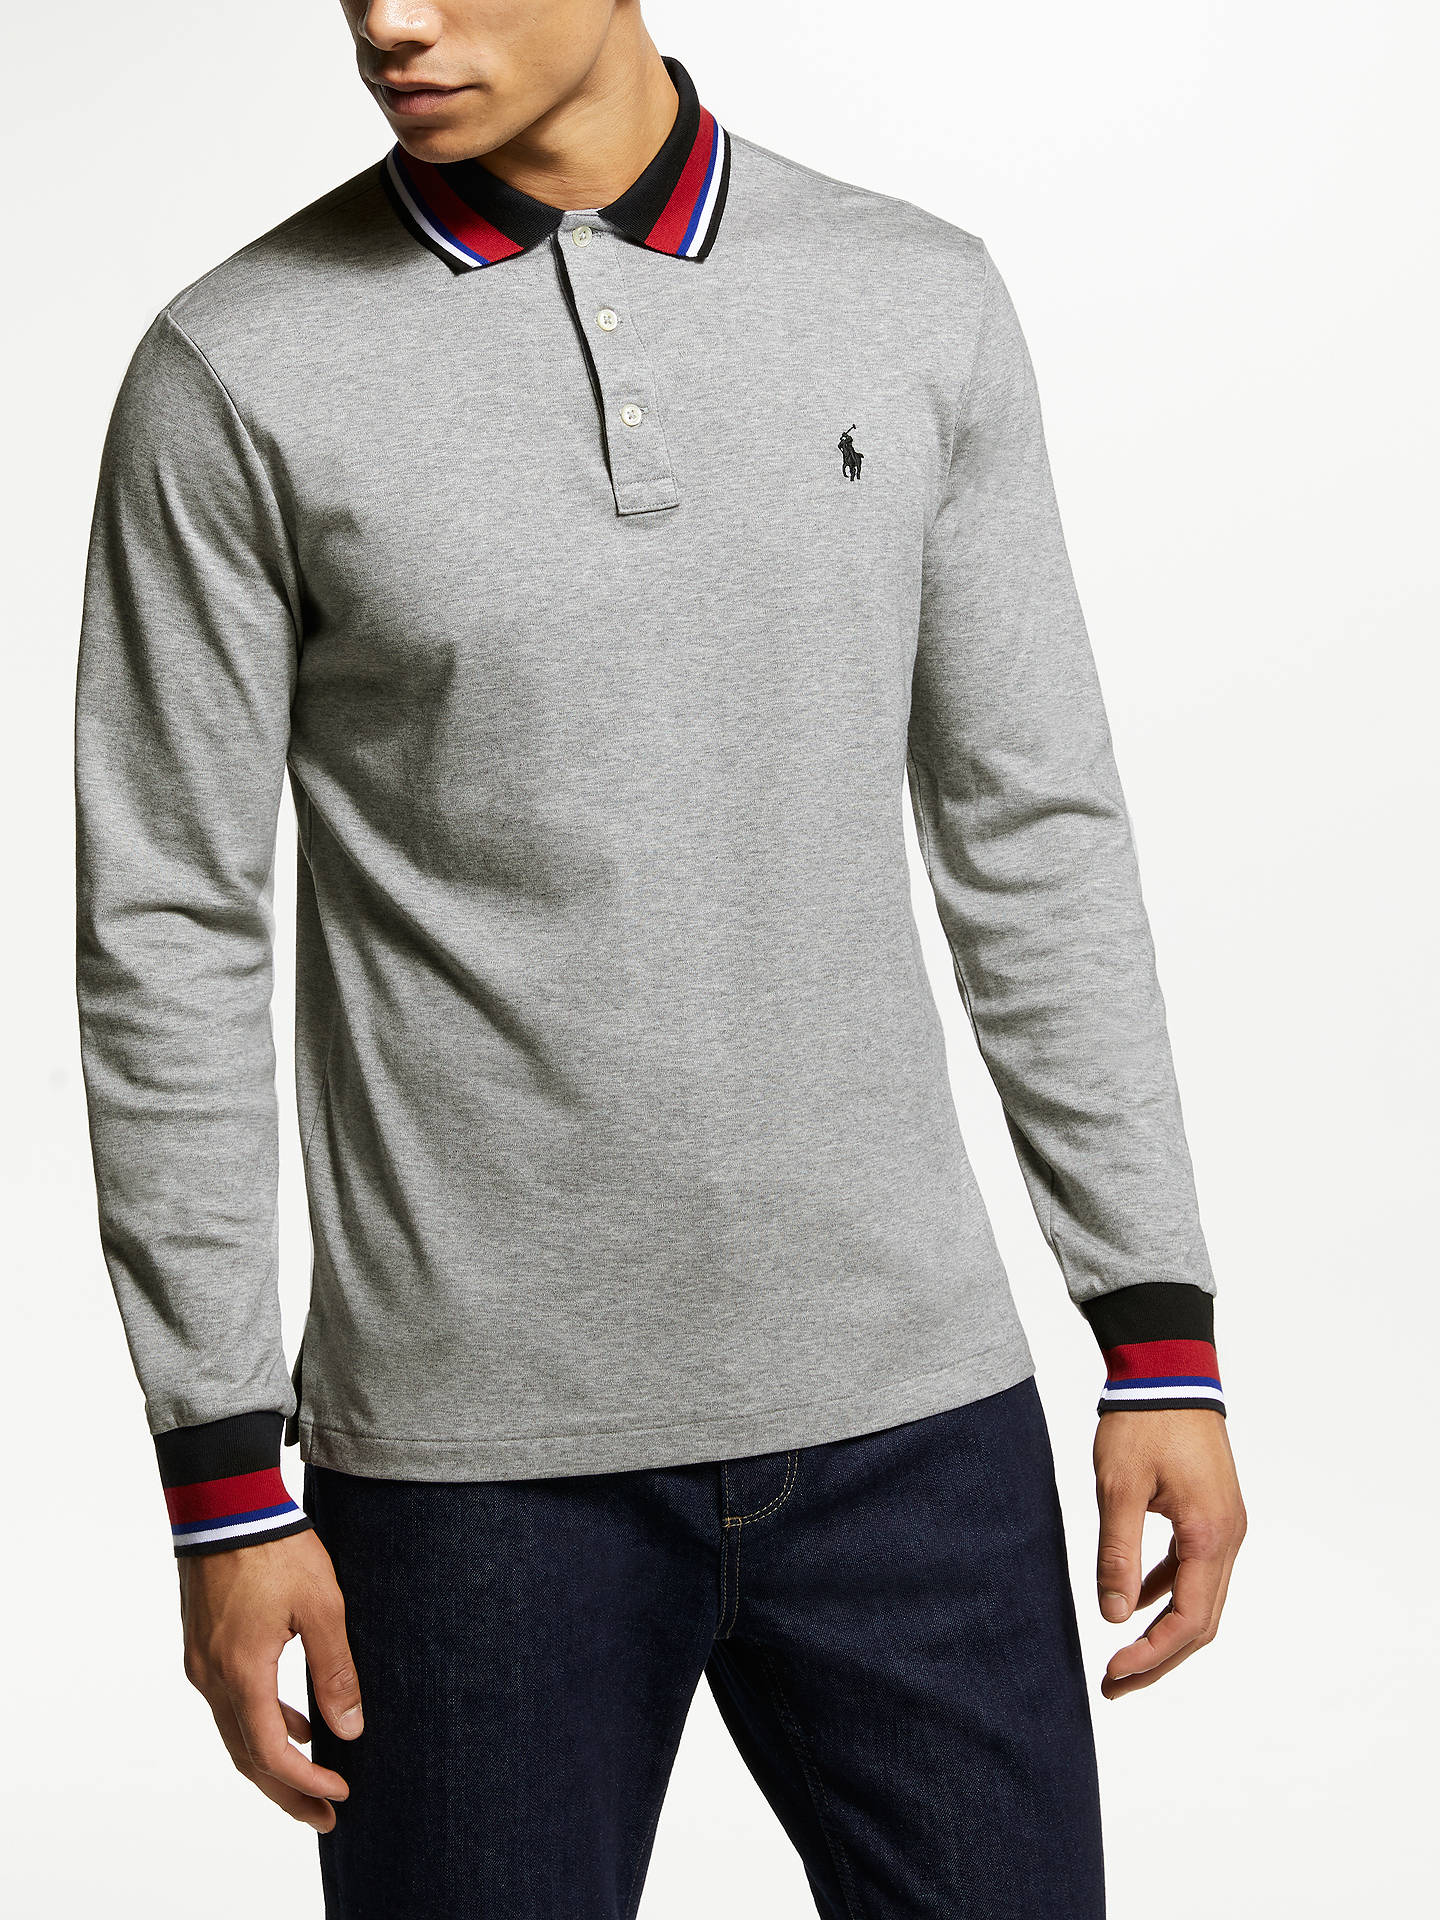 BuyPolo Ralph Lauren Sports Trim Pima Cotton Polo Shirt, Andover Heather, S Online at johnlewis.com